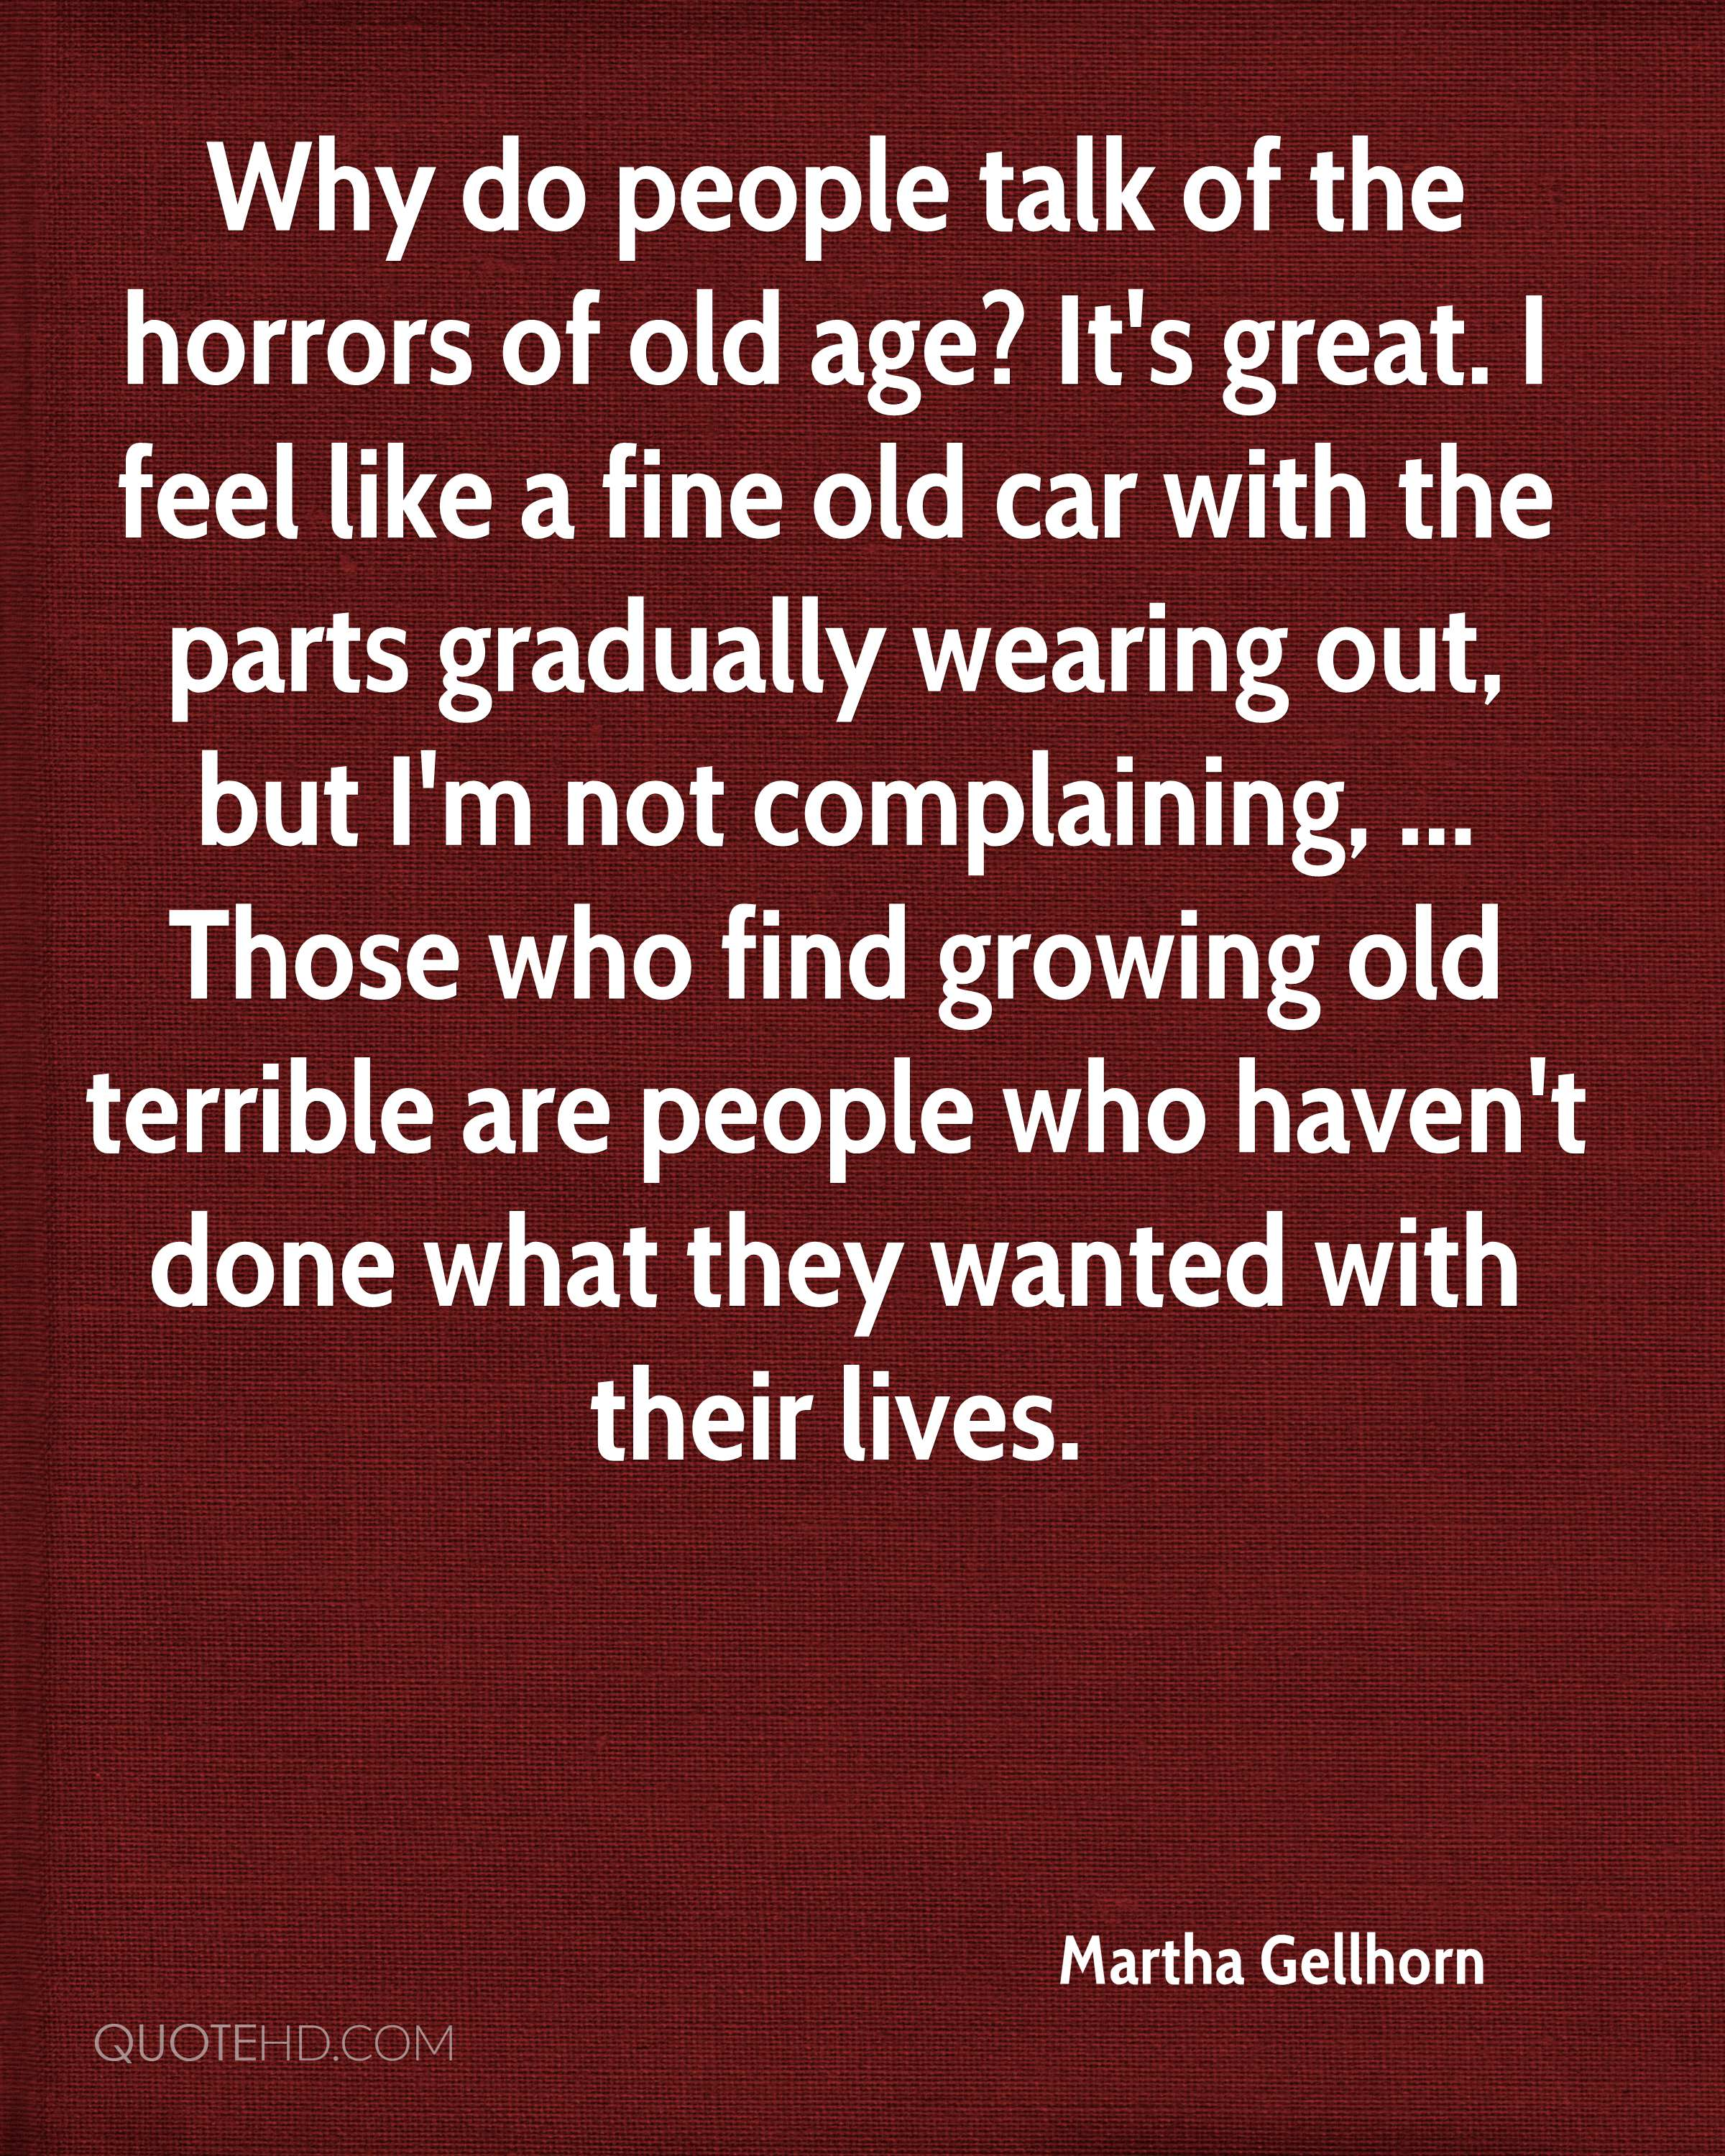 Why do people talk of the horrors of old age? It's great. I feel like a fine old car with the parts gradually wearing out, but I'm not complaining, ... Those who find growing old terrible are people who haven't done what they wanted with their lives.